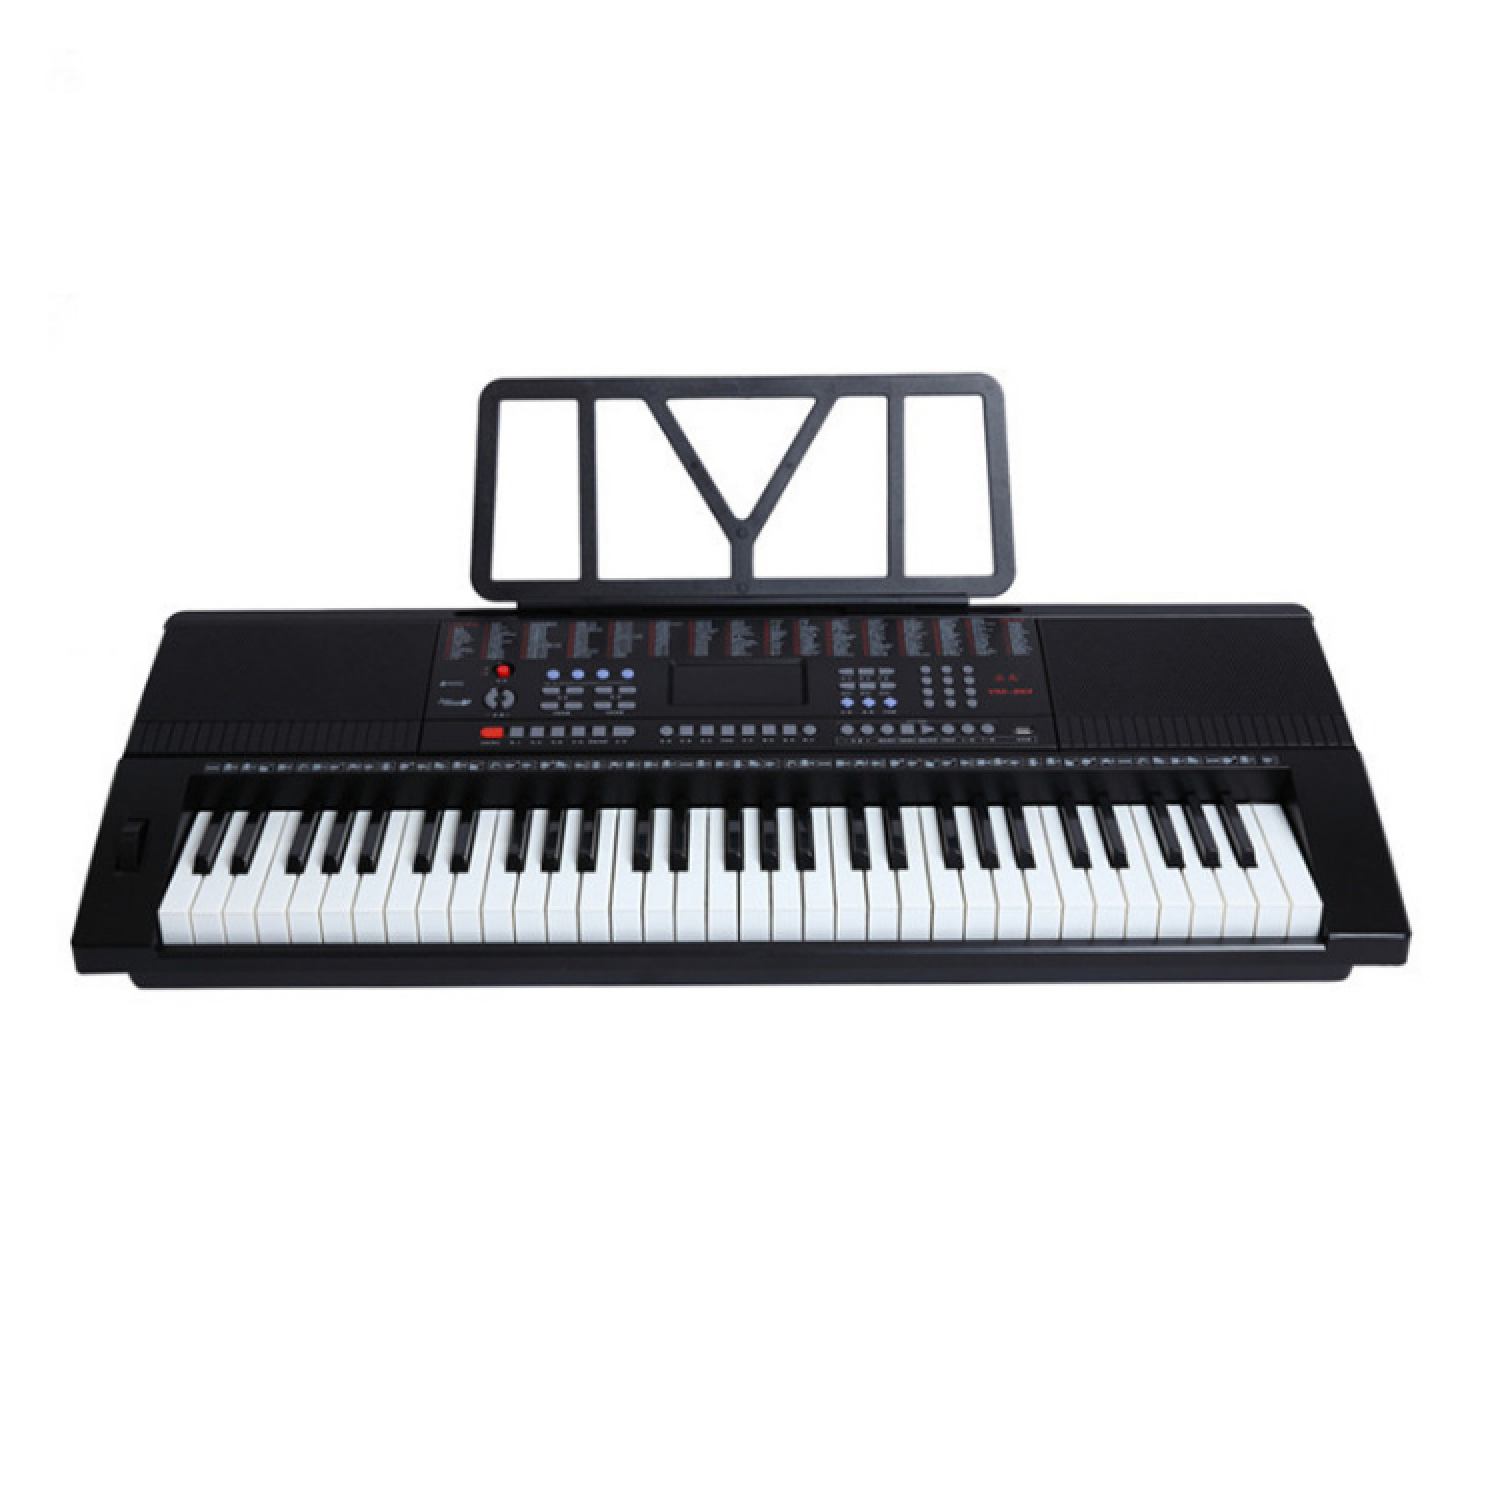 Professional 61 keys LED display standard piano electronic digital keyboard